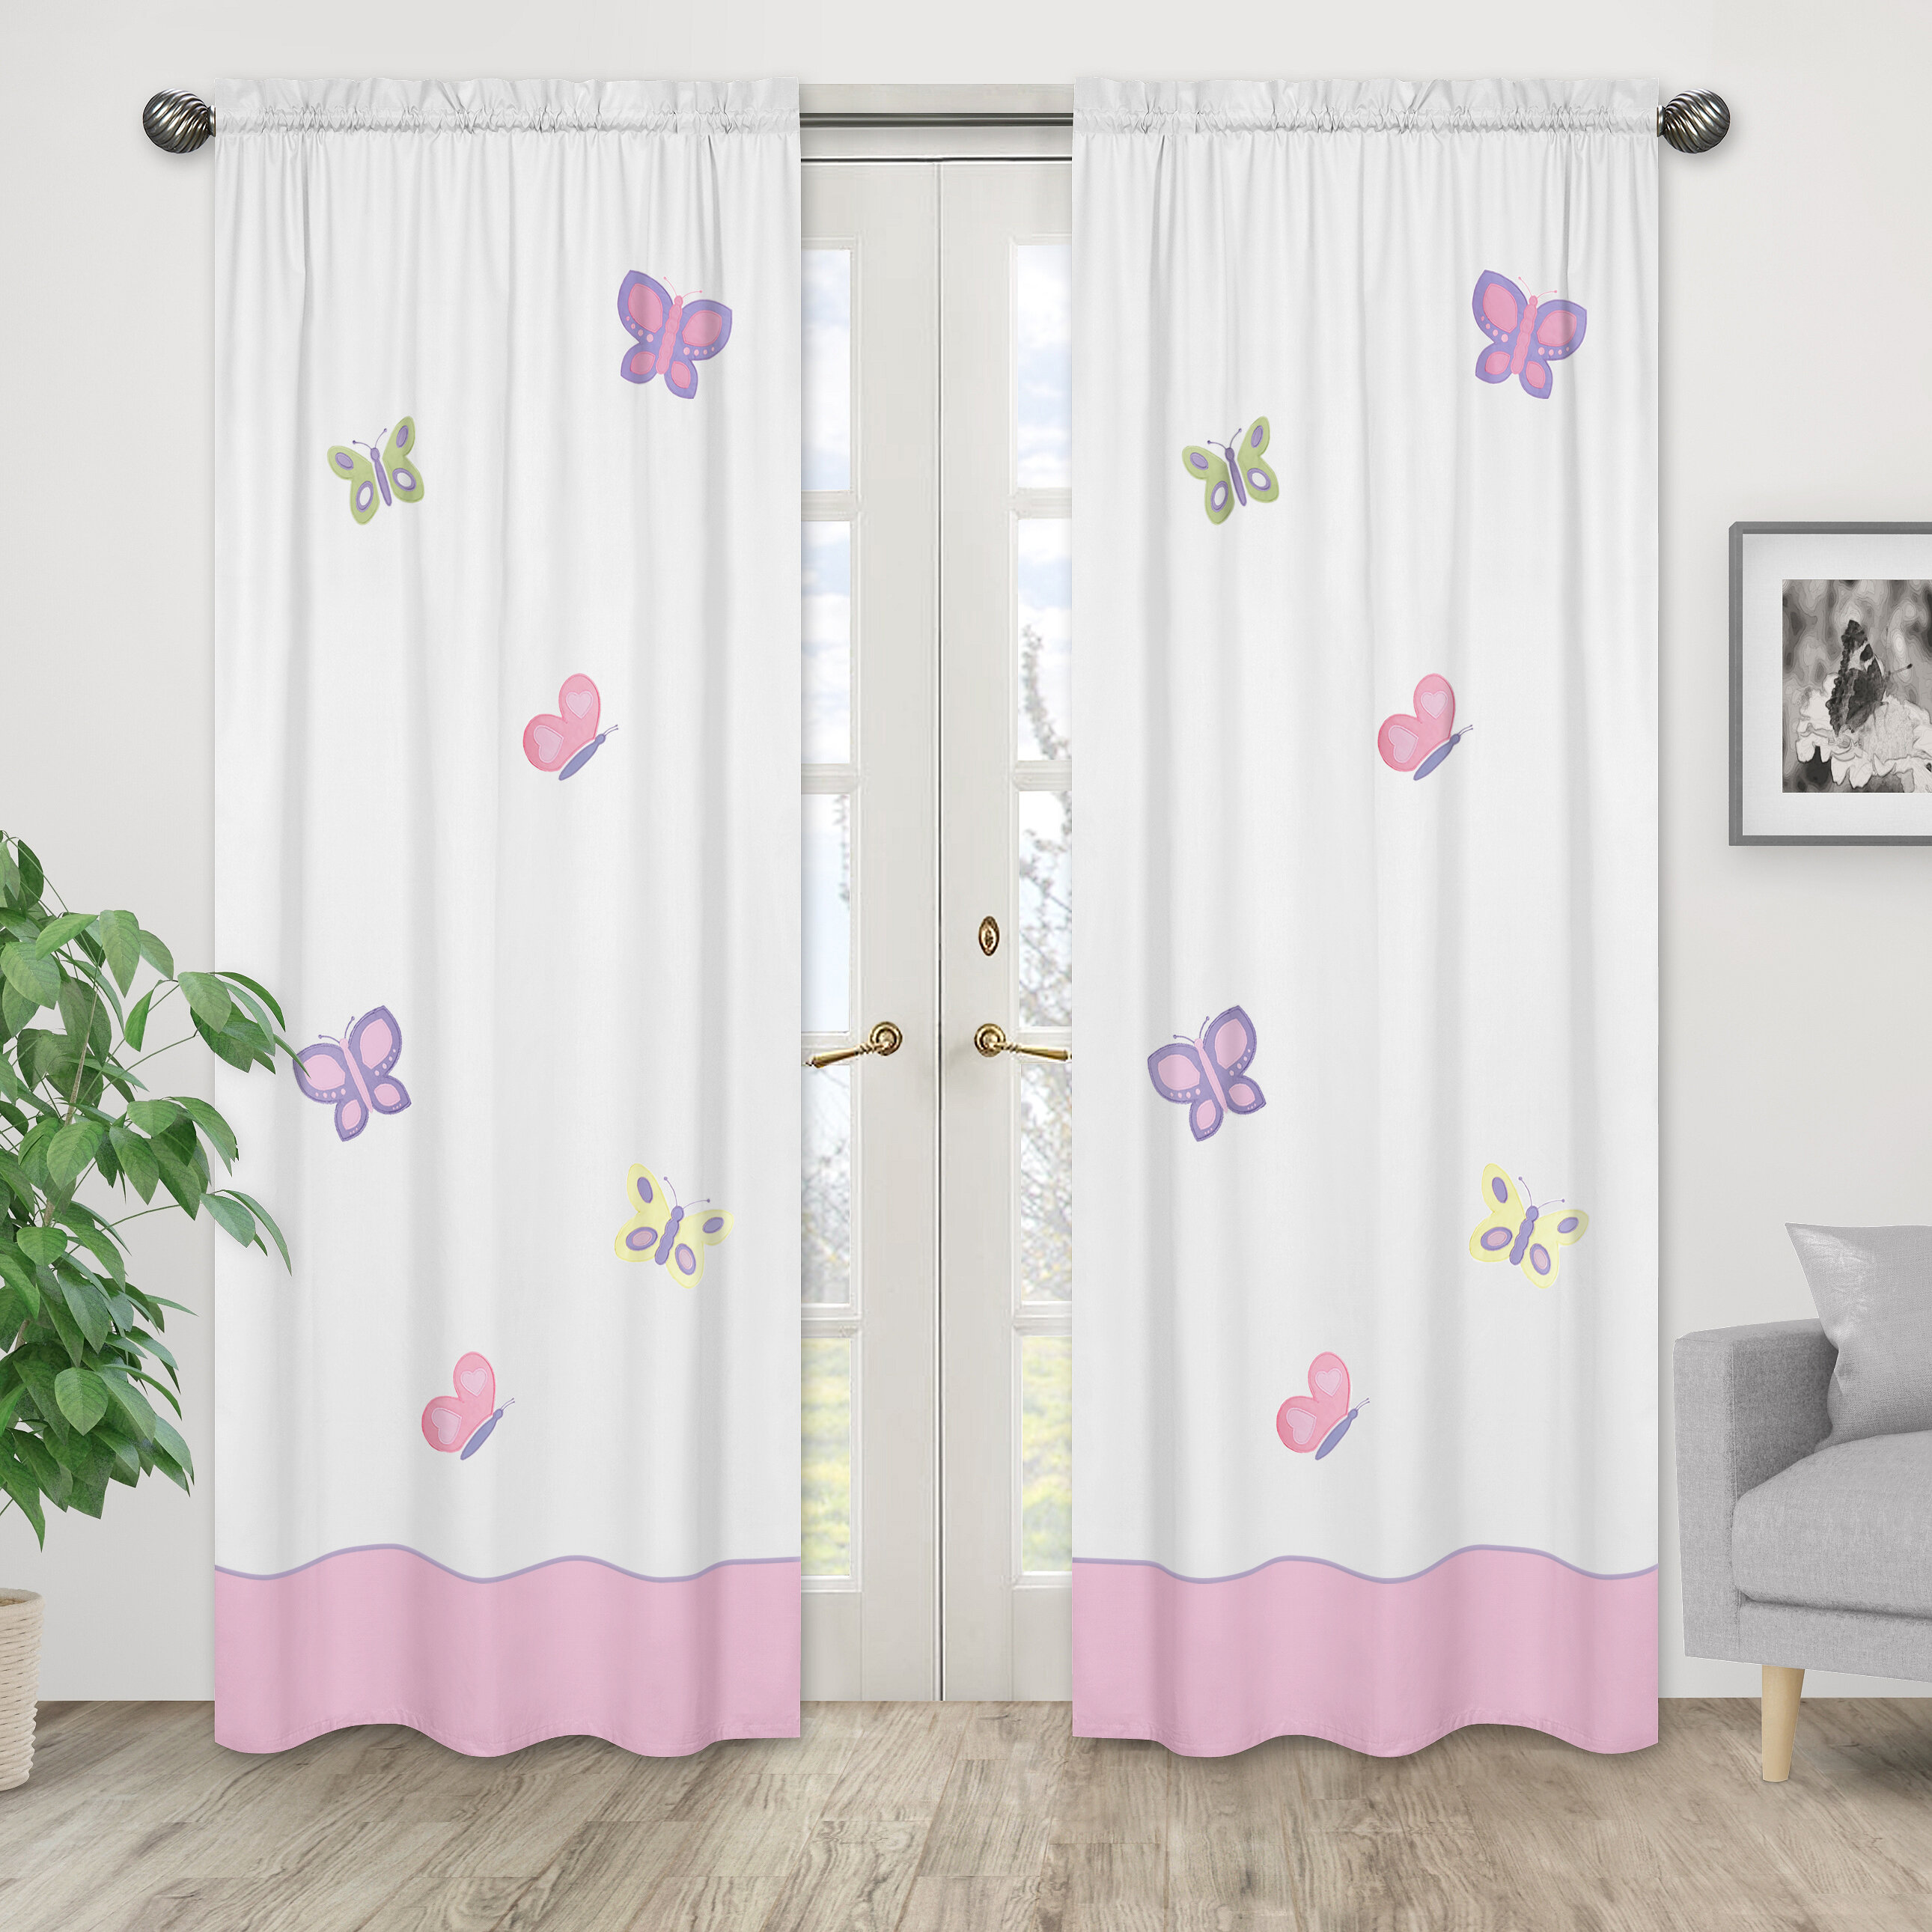 Kids Zone Home Linen Curtain 2 Panel Set with Grommet Multi-Color Dinosaur Pink Purple Aqua White New